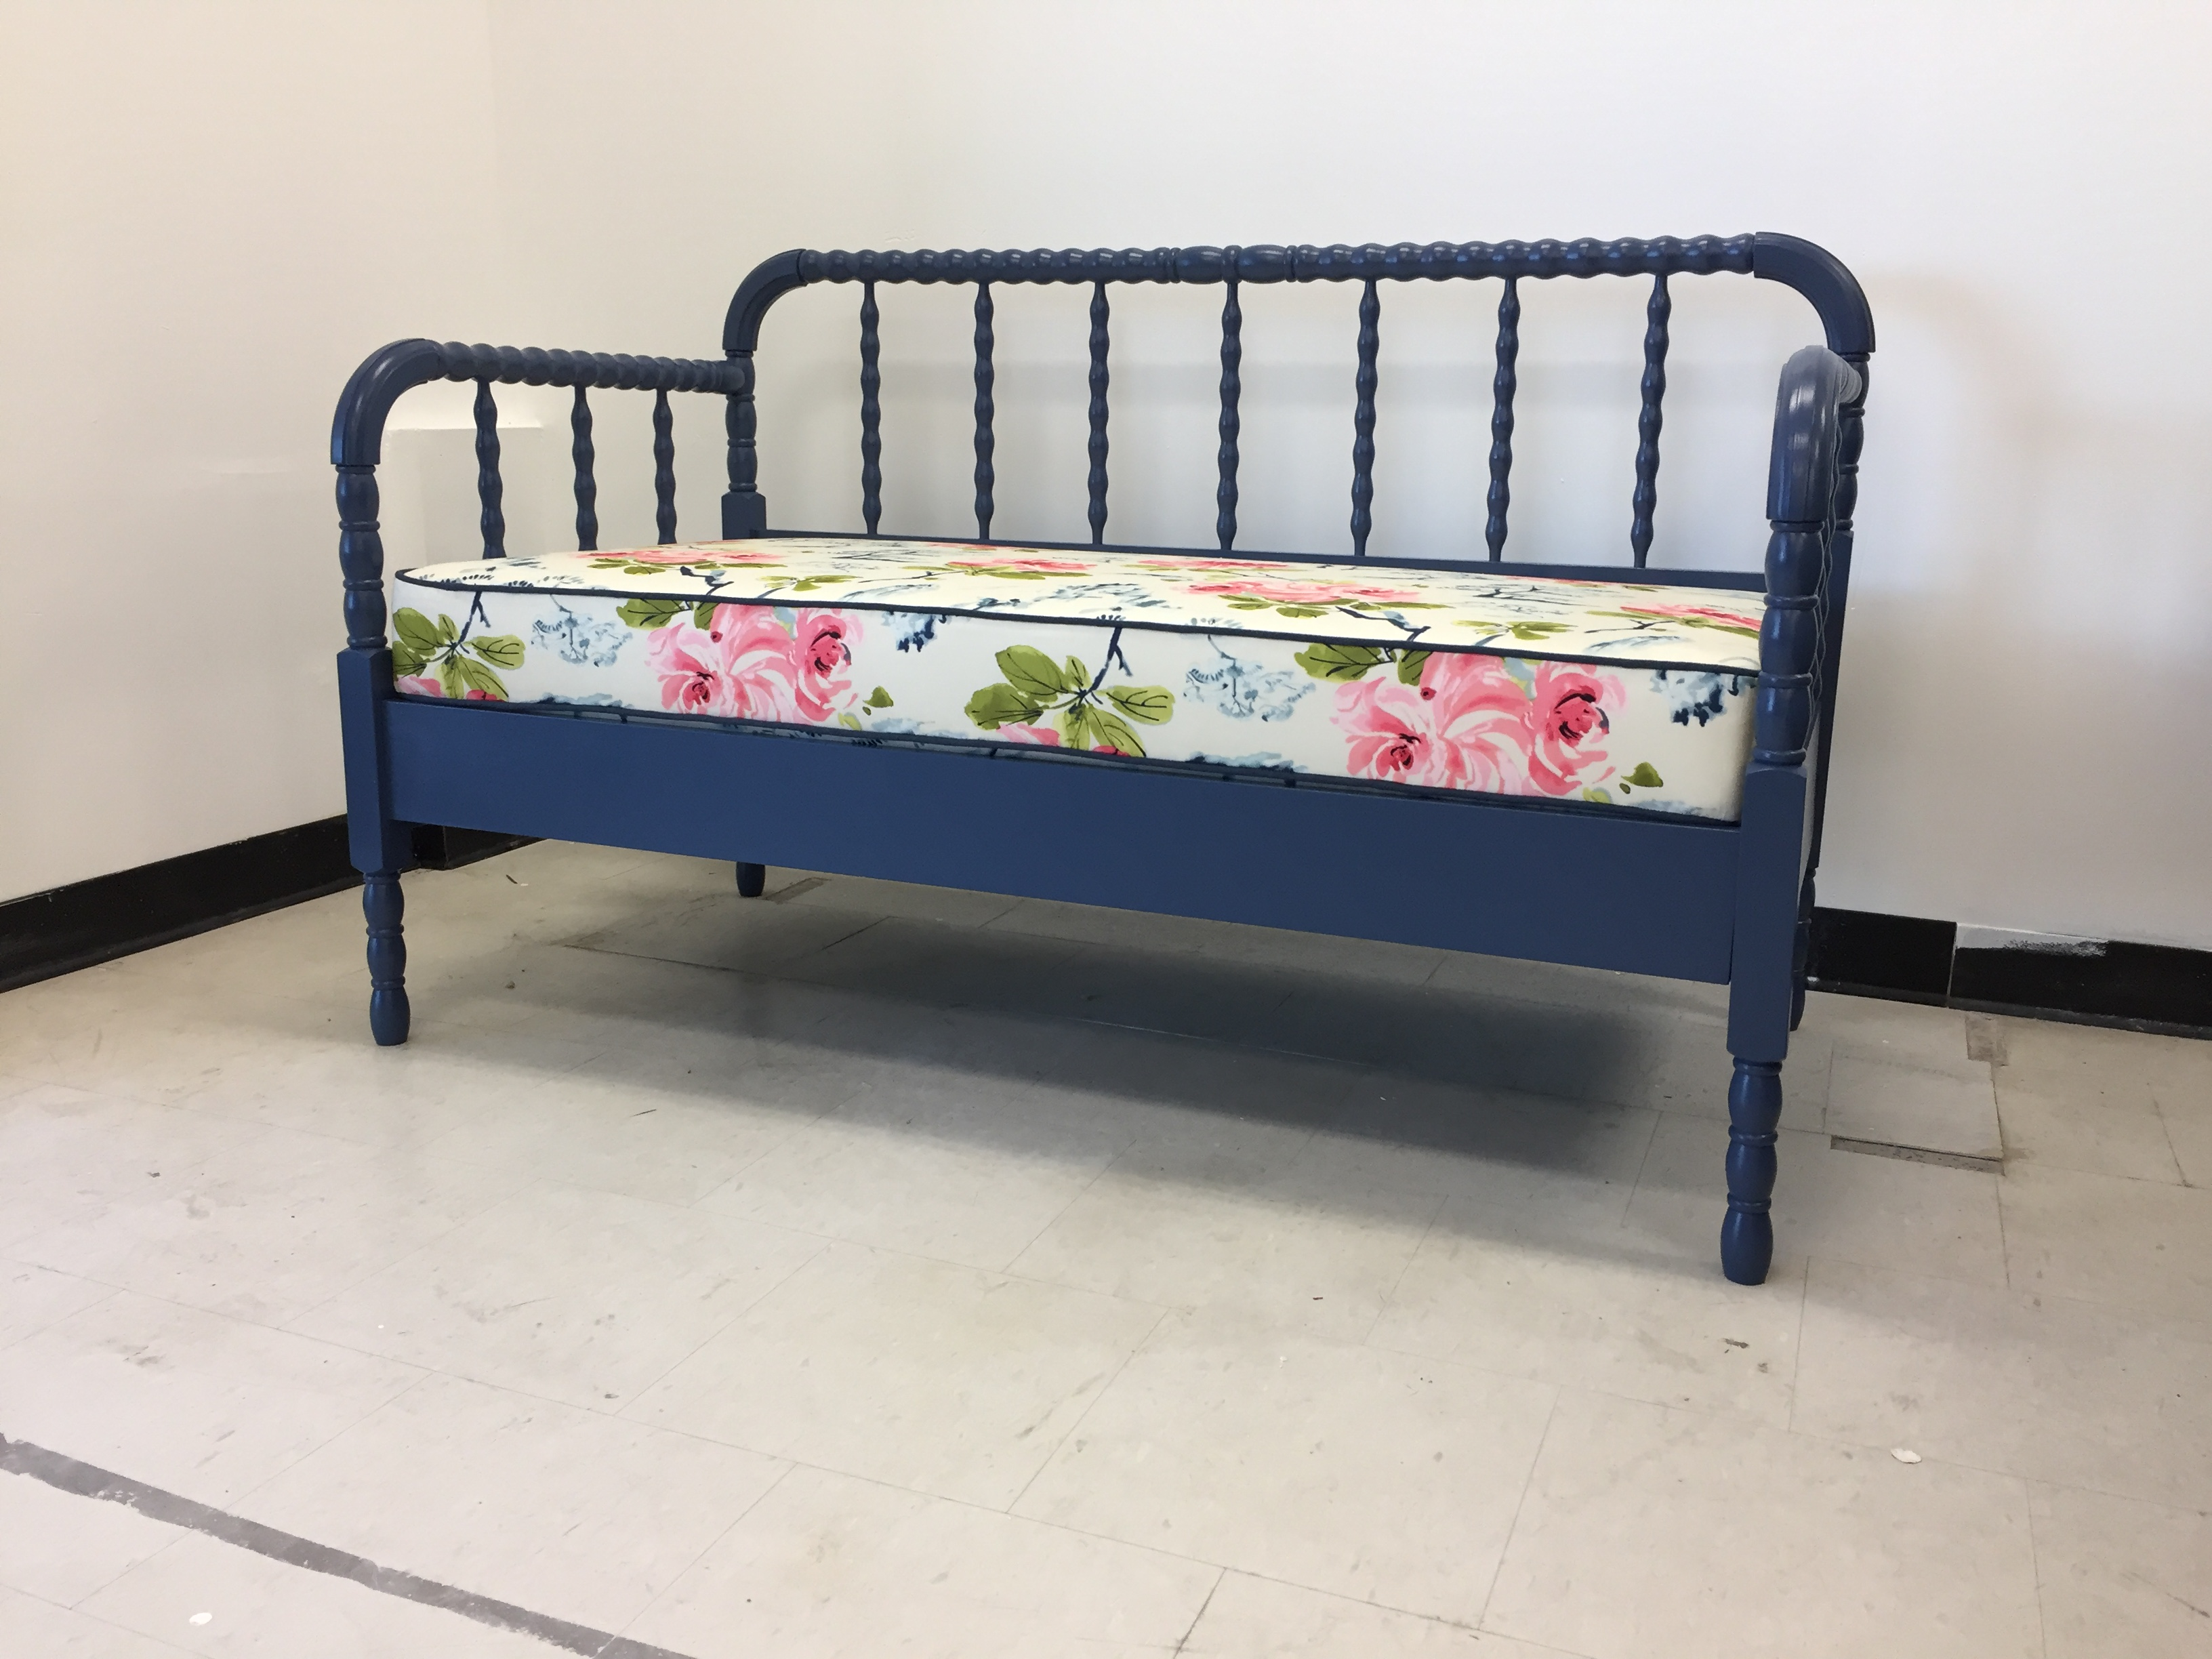 PAINT FINISHING + DAYBED COVER